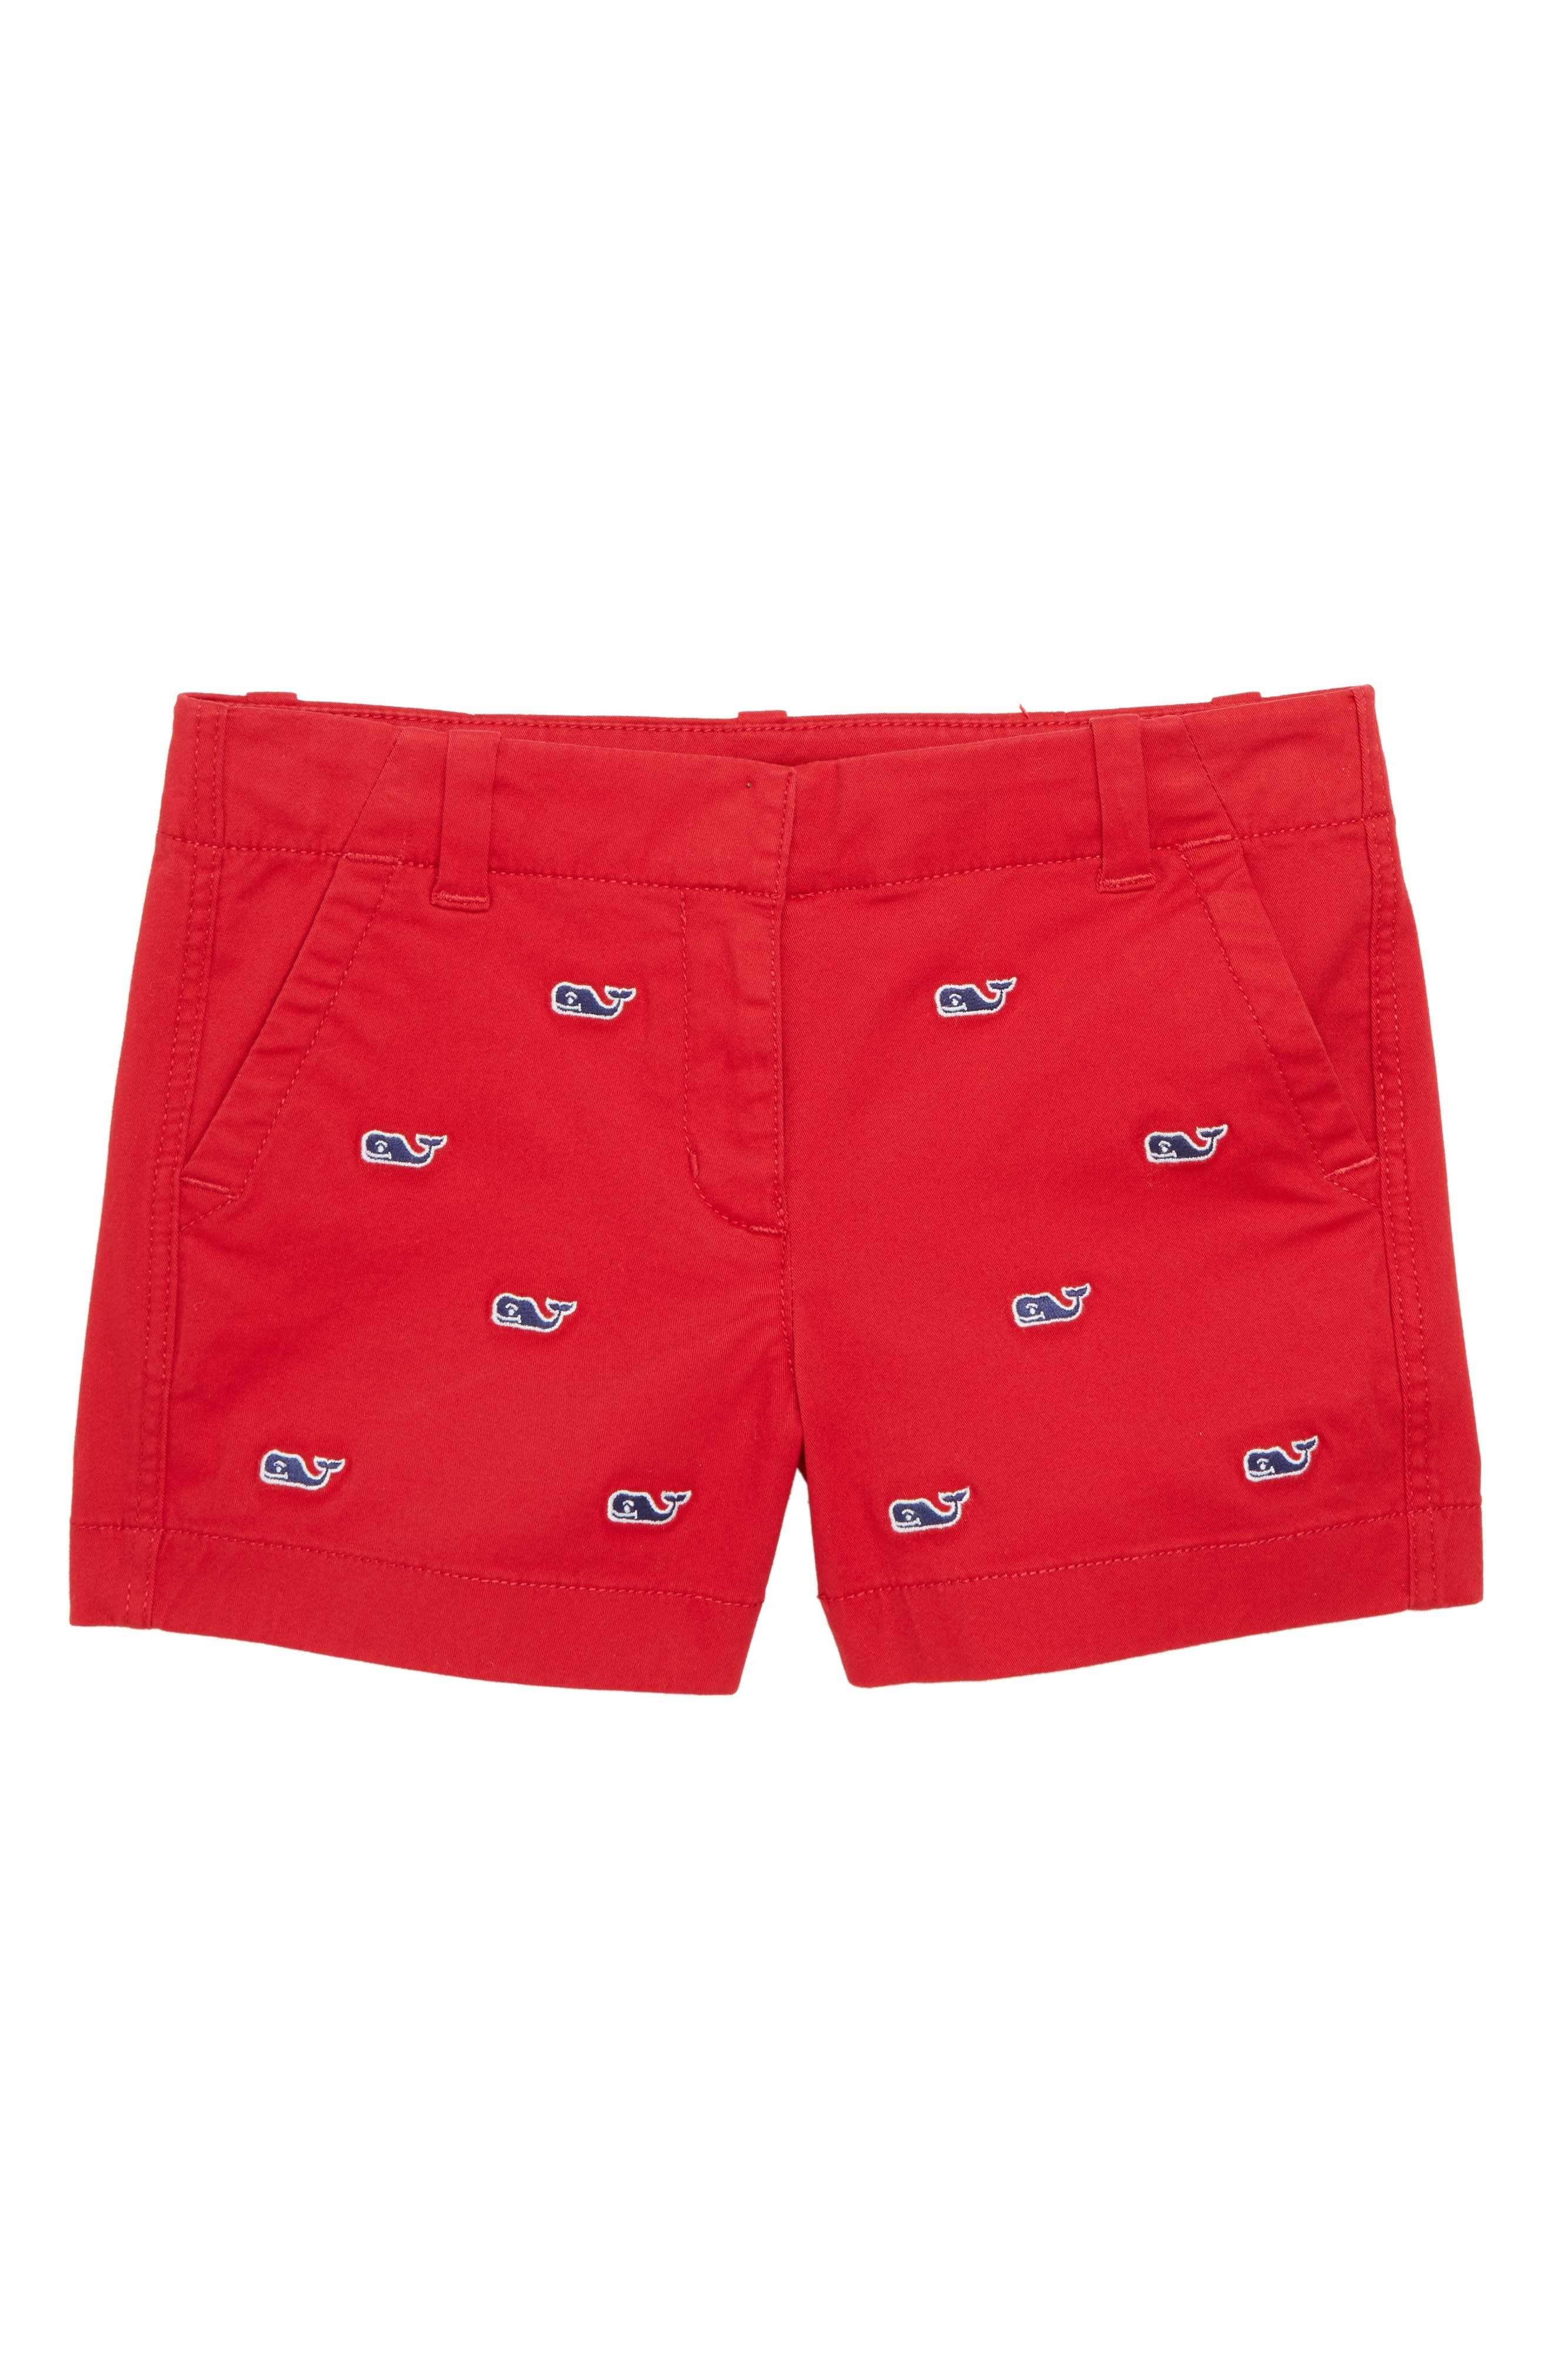 Whale Embroidered Chino Shorts,                             Main thumbnail 1, color,                             Red Velvet